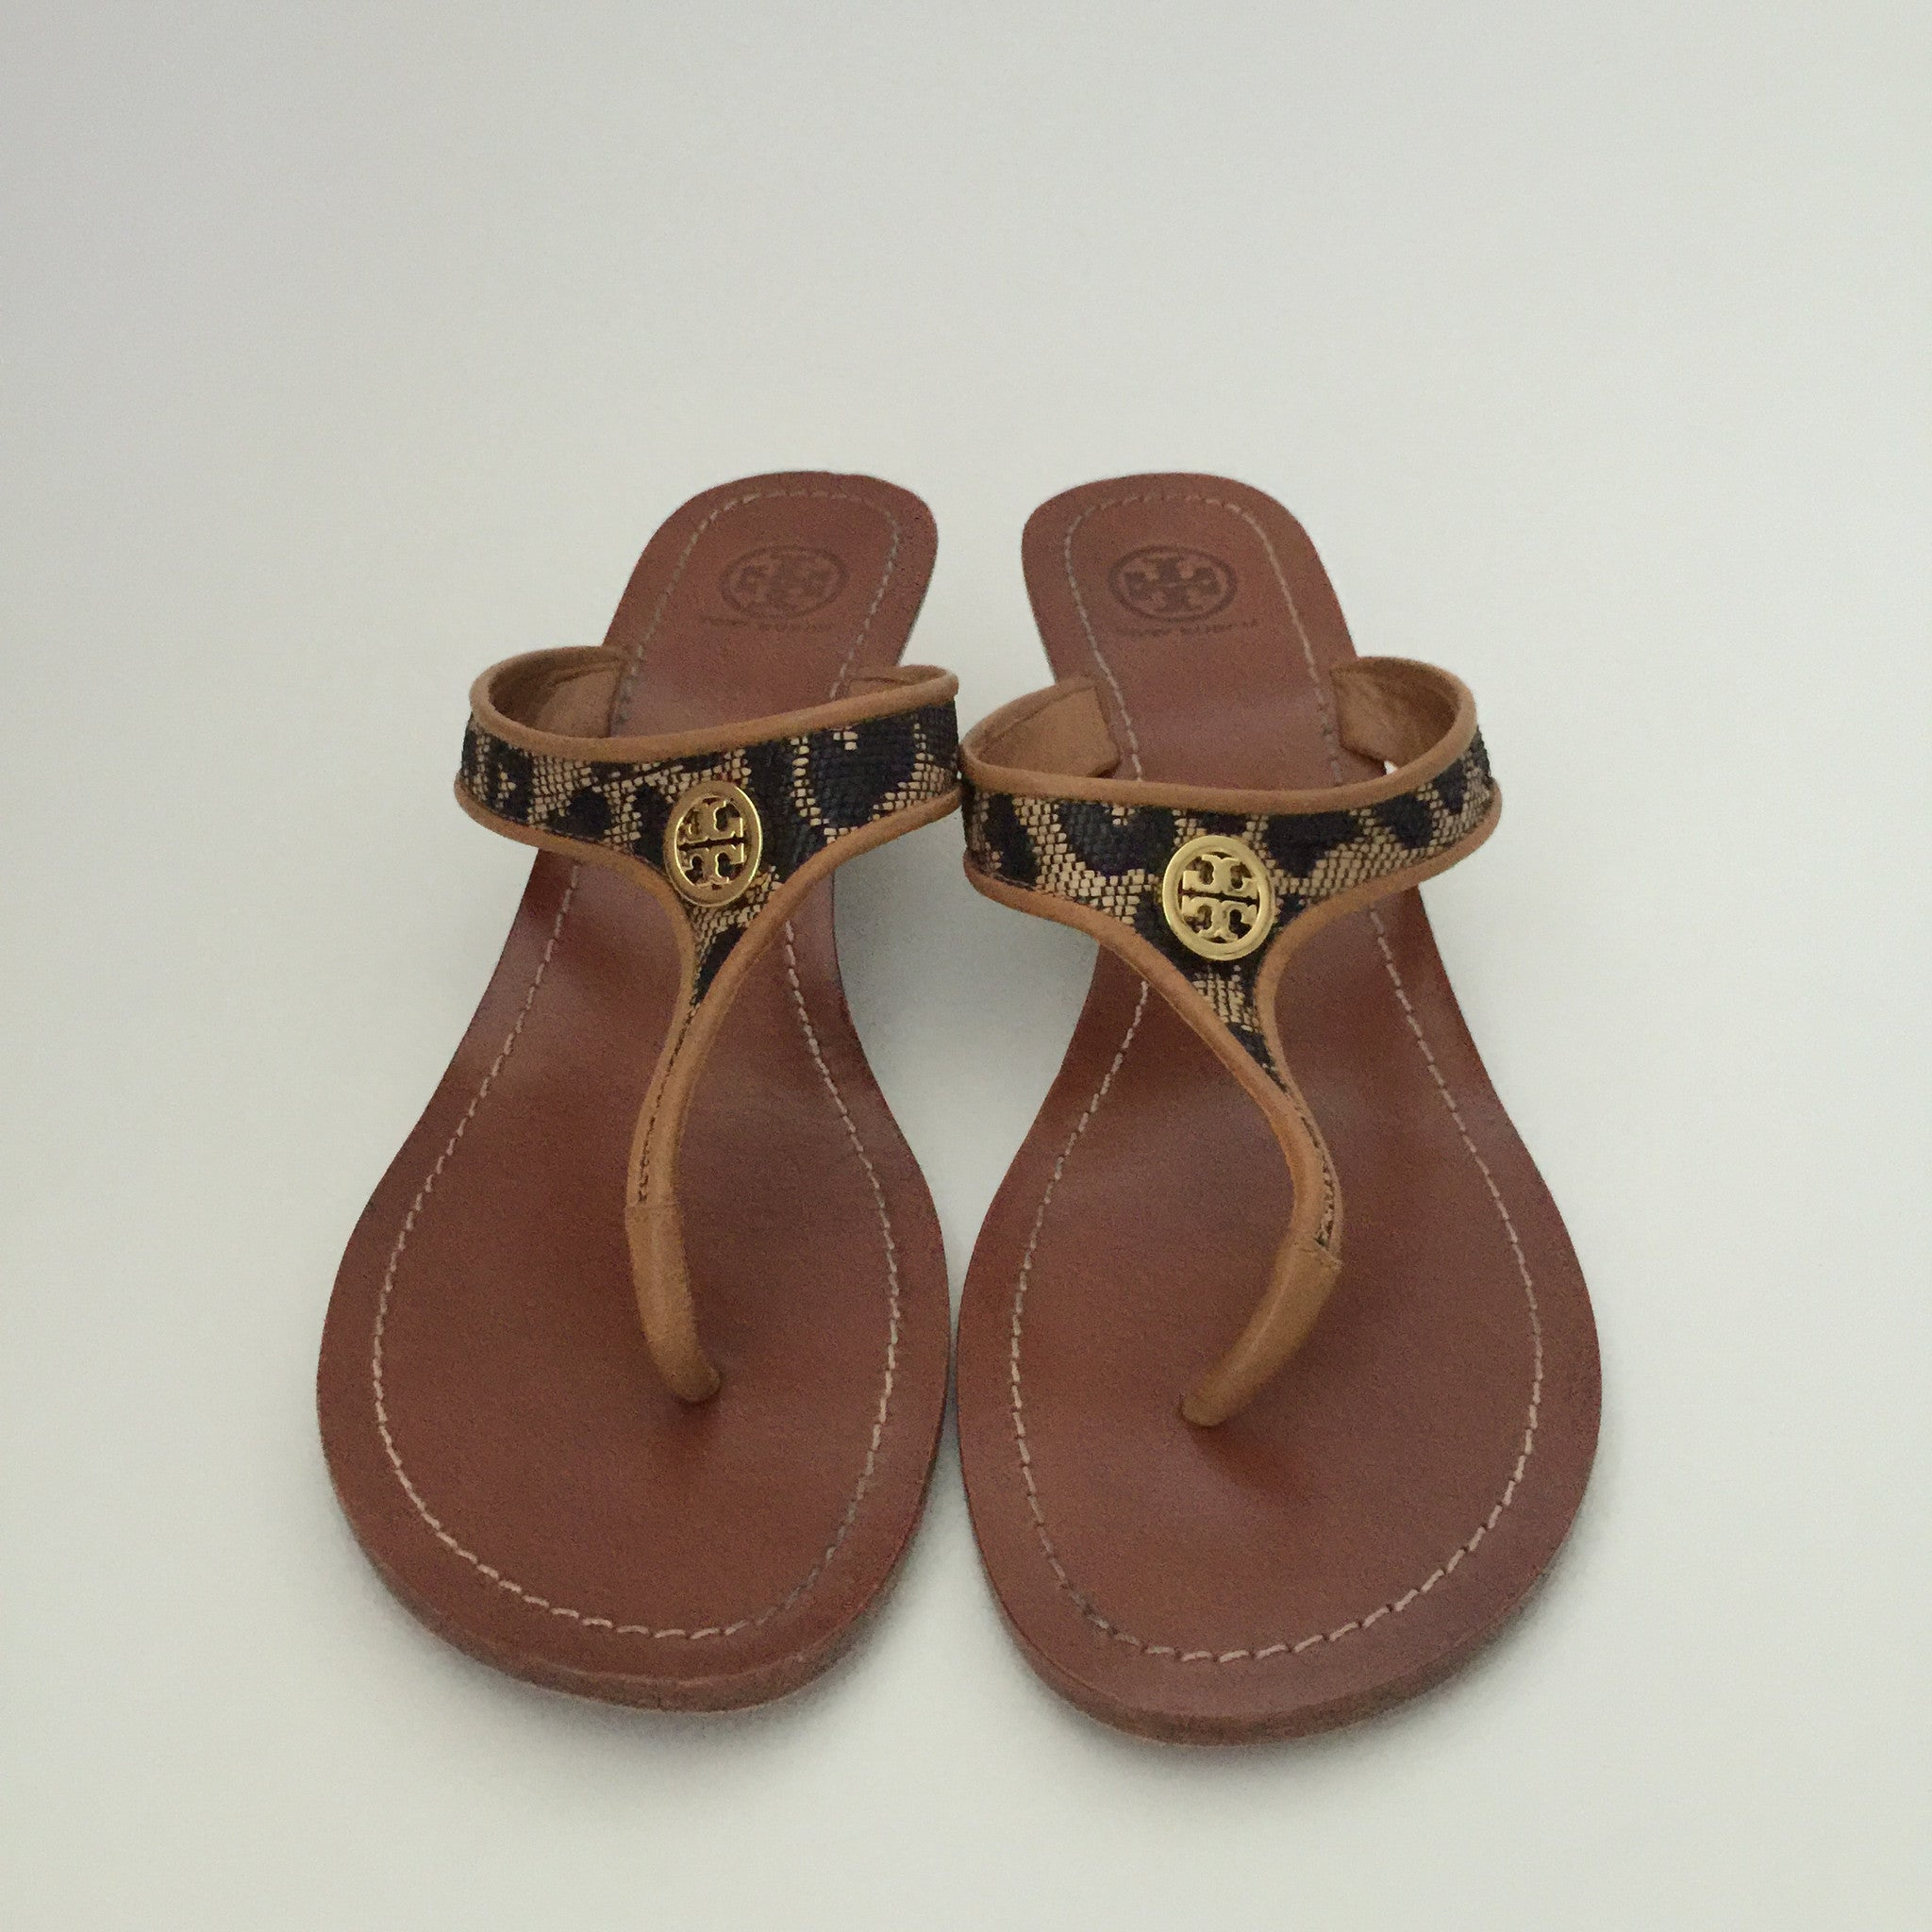 Authentic TORY BURCH Wedge Thongs Size 41